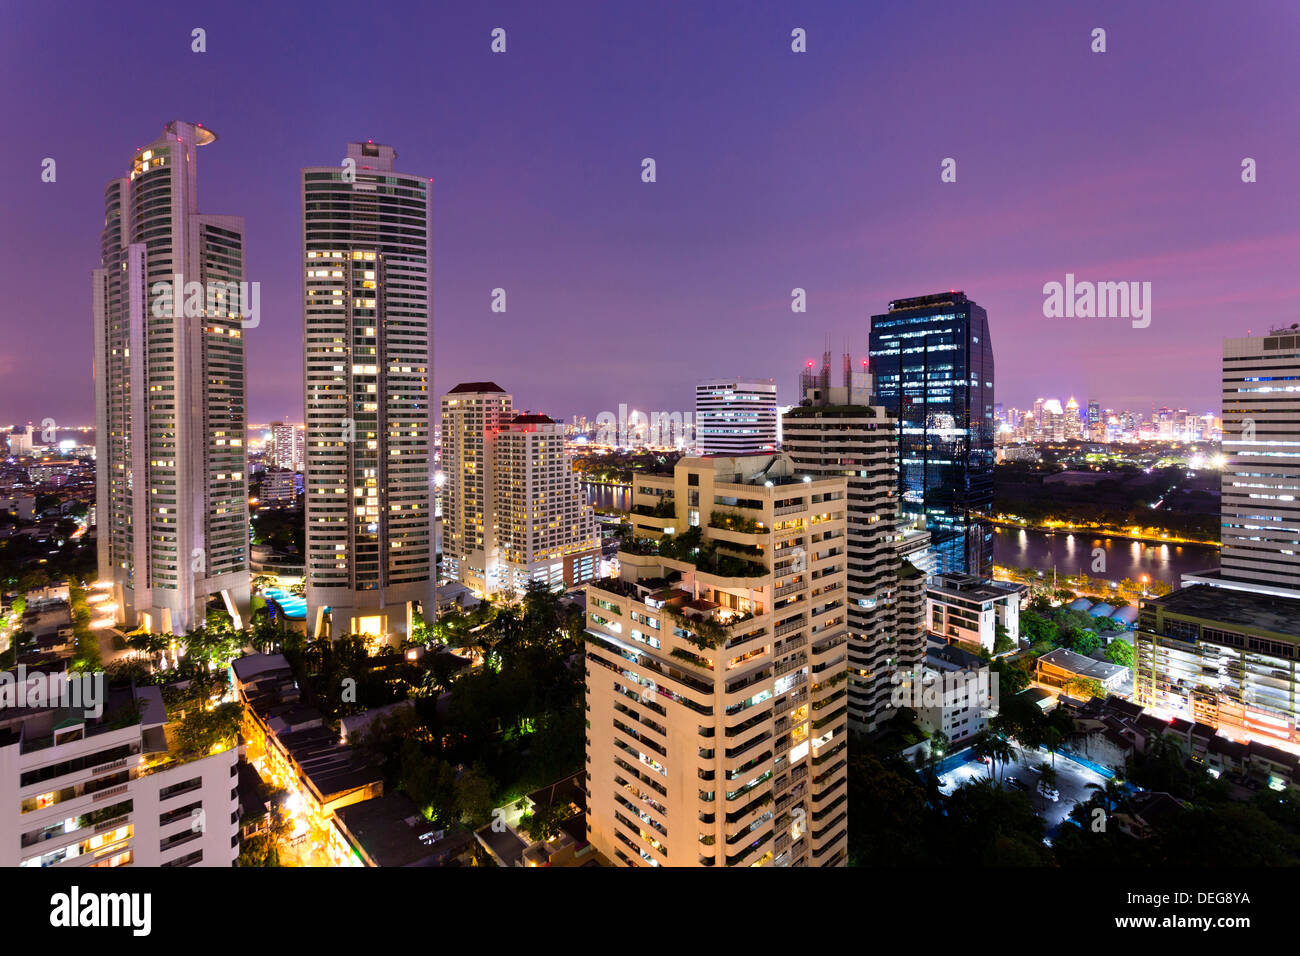 High rise buildings of Bangkok at night from Rembrandt Hotel and Towers, Sukhumvit 18, Bangkok, Thailand, Southeast Asia, Asia - Stock Image